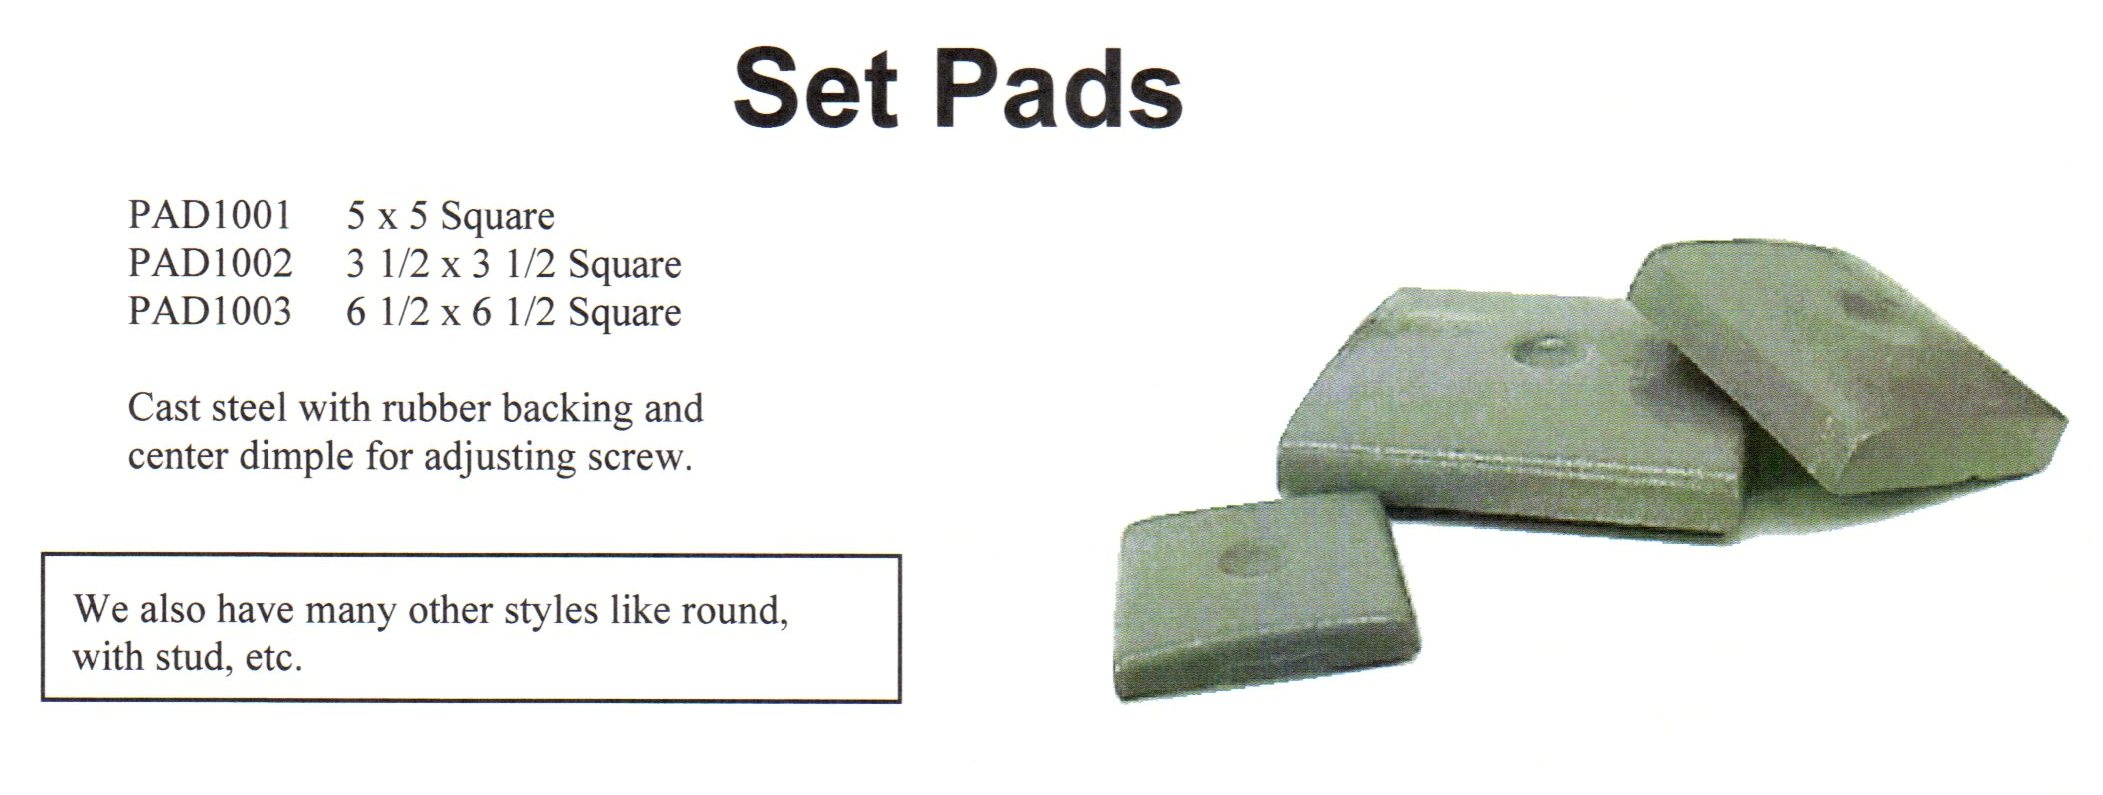 Machine Set Pads